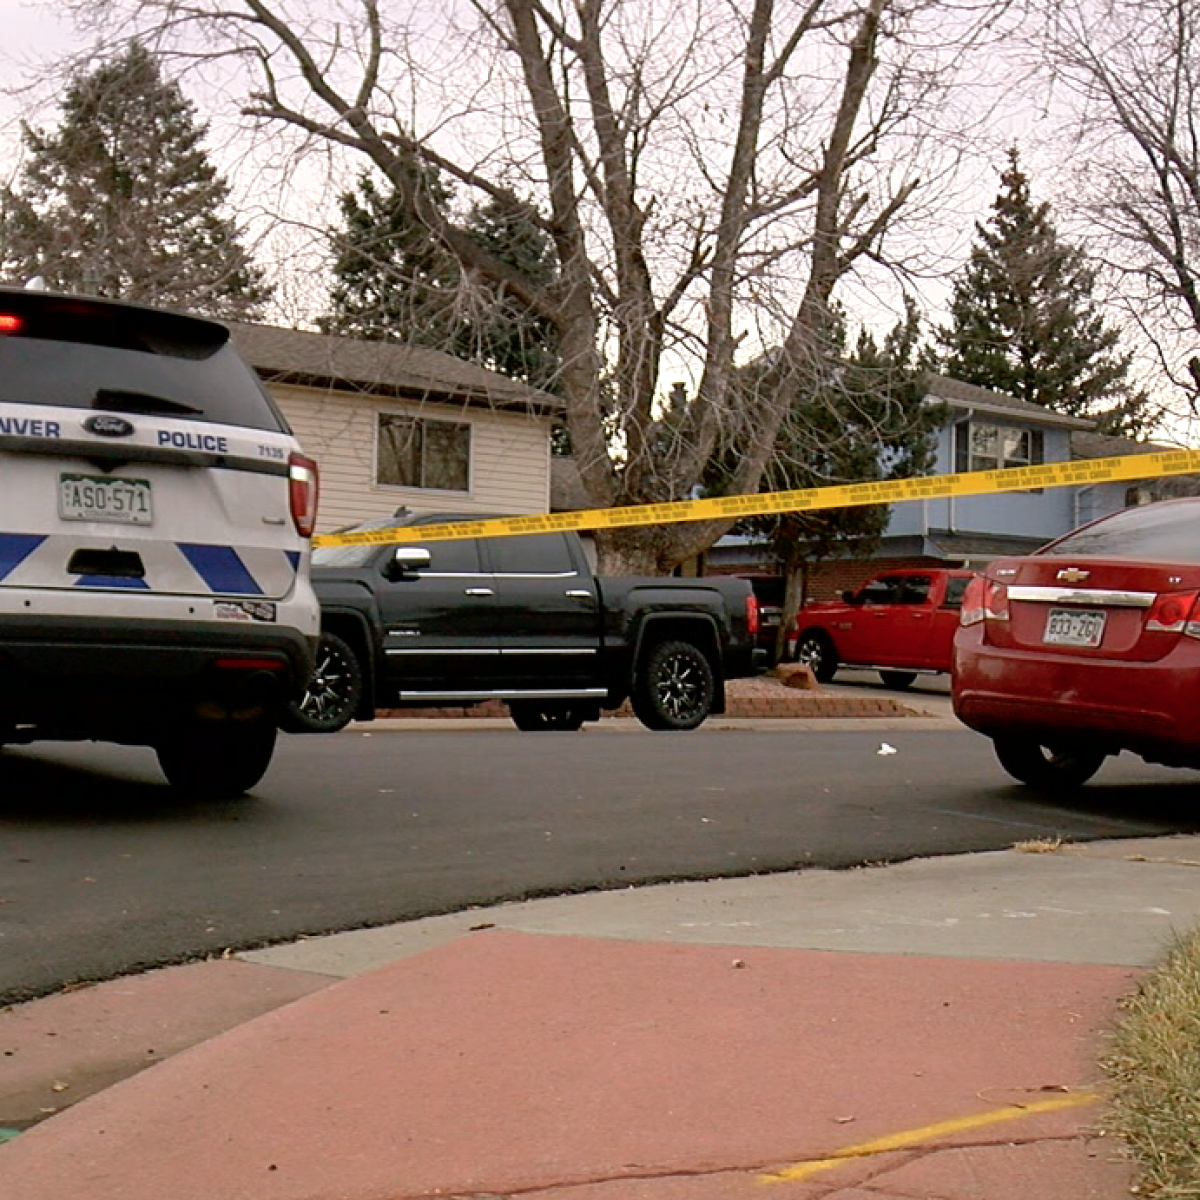 Denver Police Shooting Today: Denver Police Investigate Shooting In Northeast Denver; 1